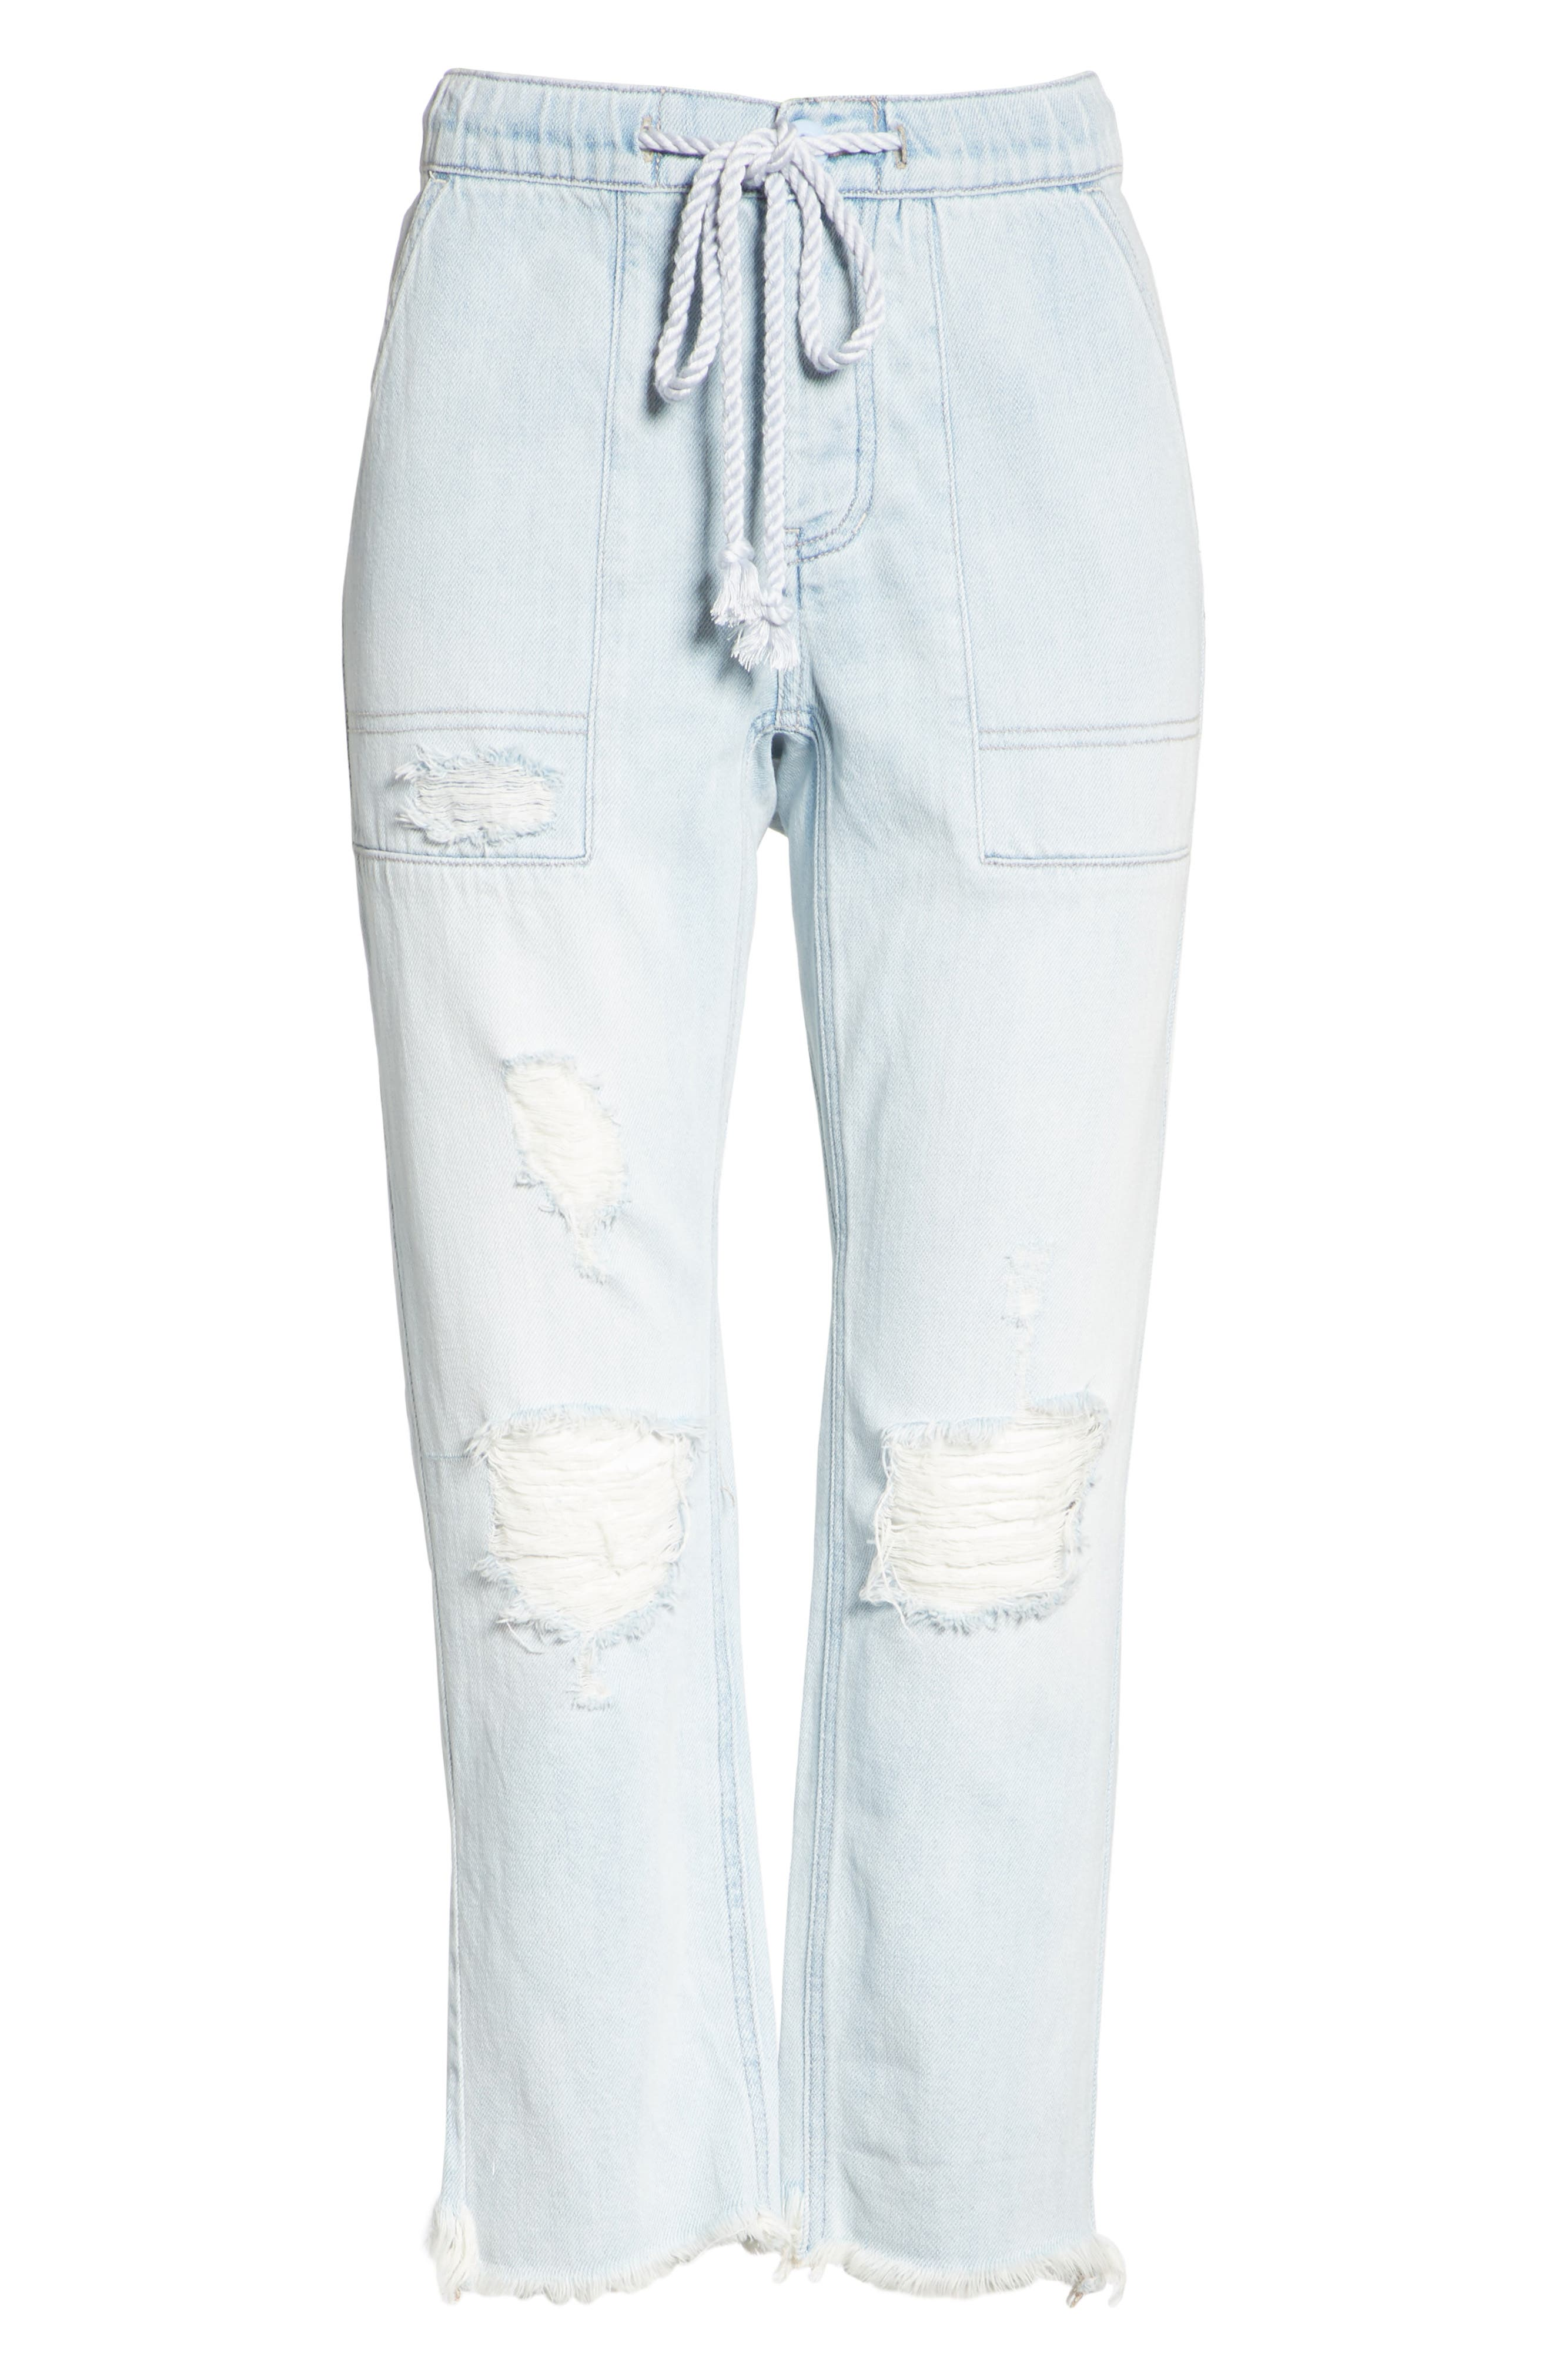 Northern Sky Ripped Crop Jeans,                             Alternate thumbnail 6, color,                             Blue